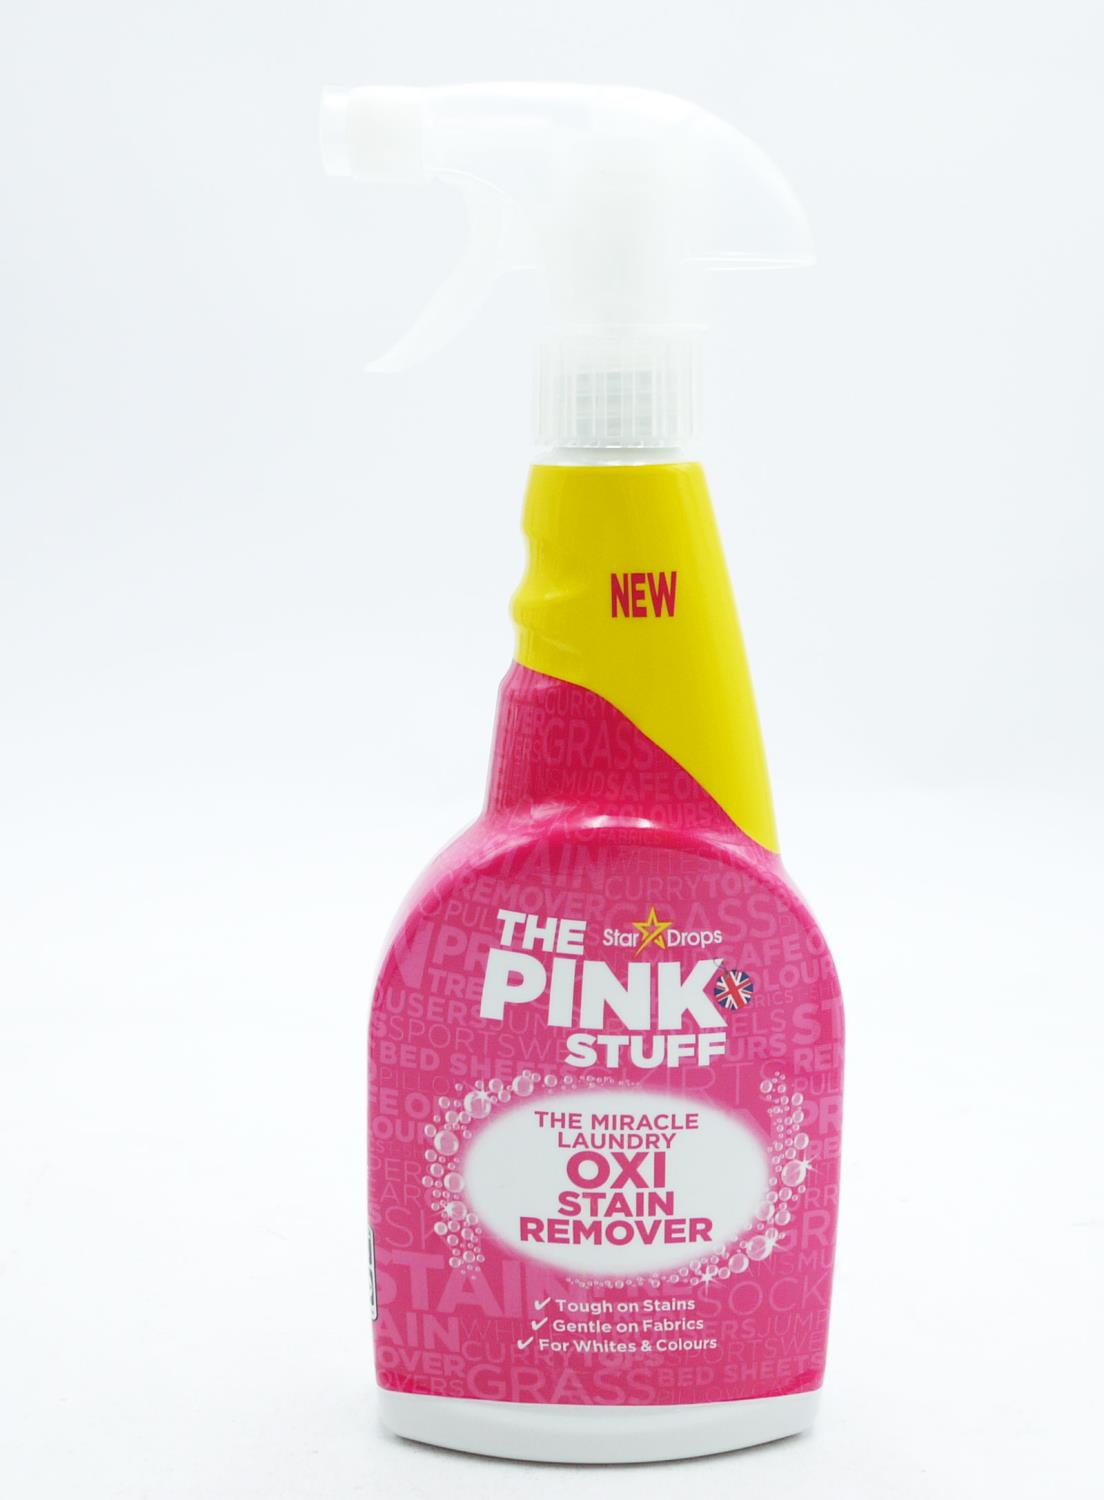 The Pink Stuff Stain Remover Spray